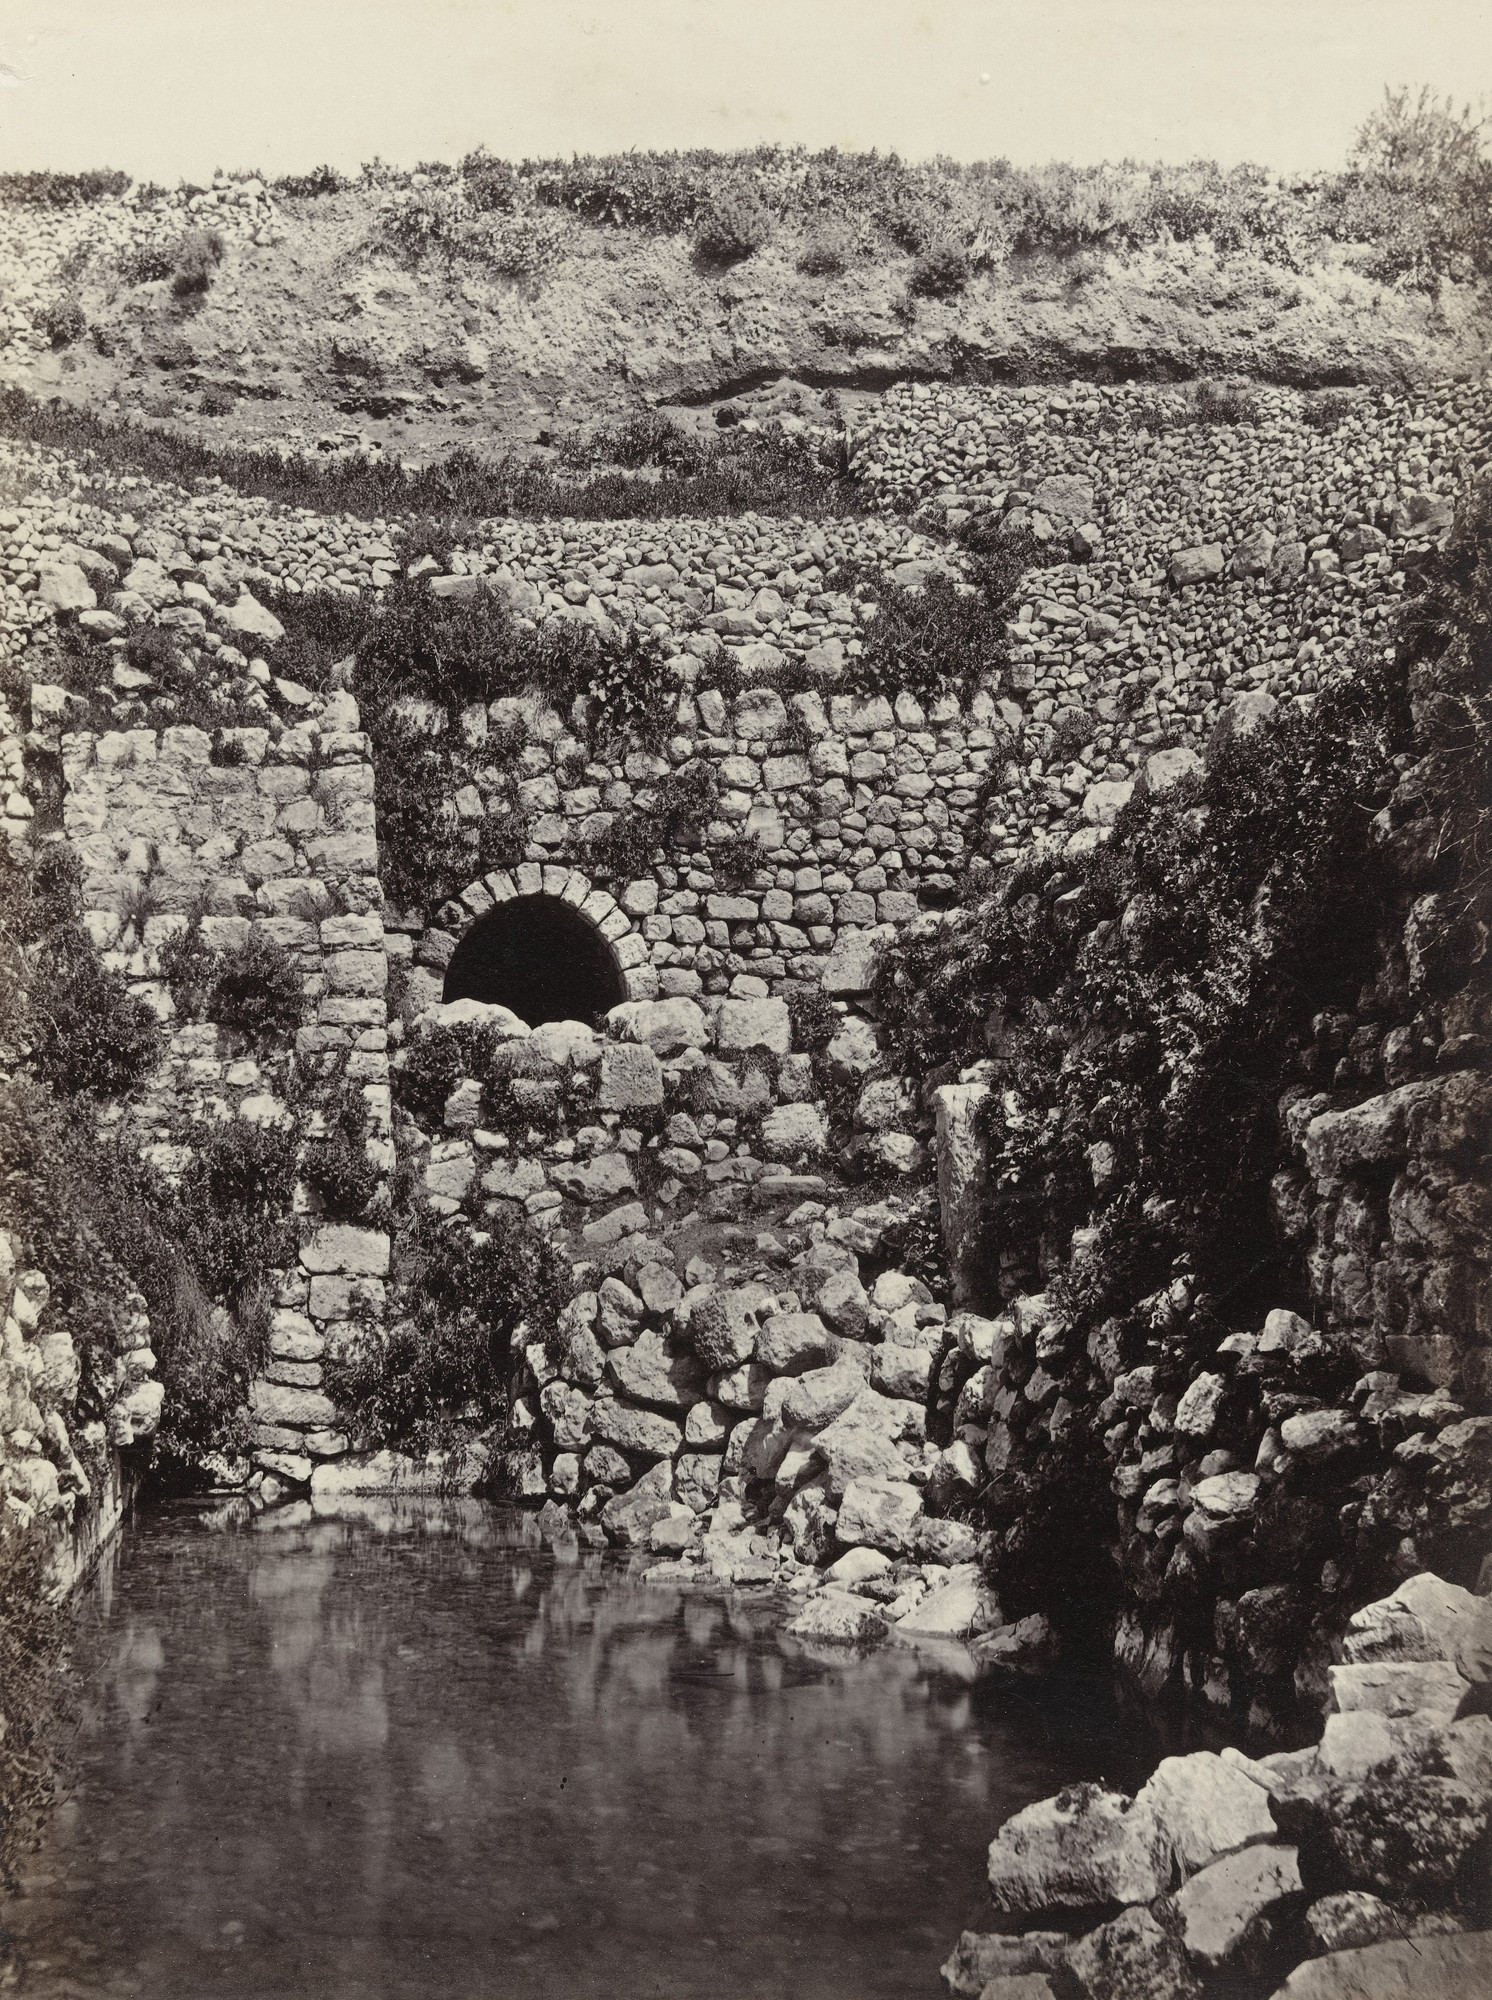 Francis Frith. The Pool of Siloam, Jerusalem (#578). c. 1860